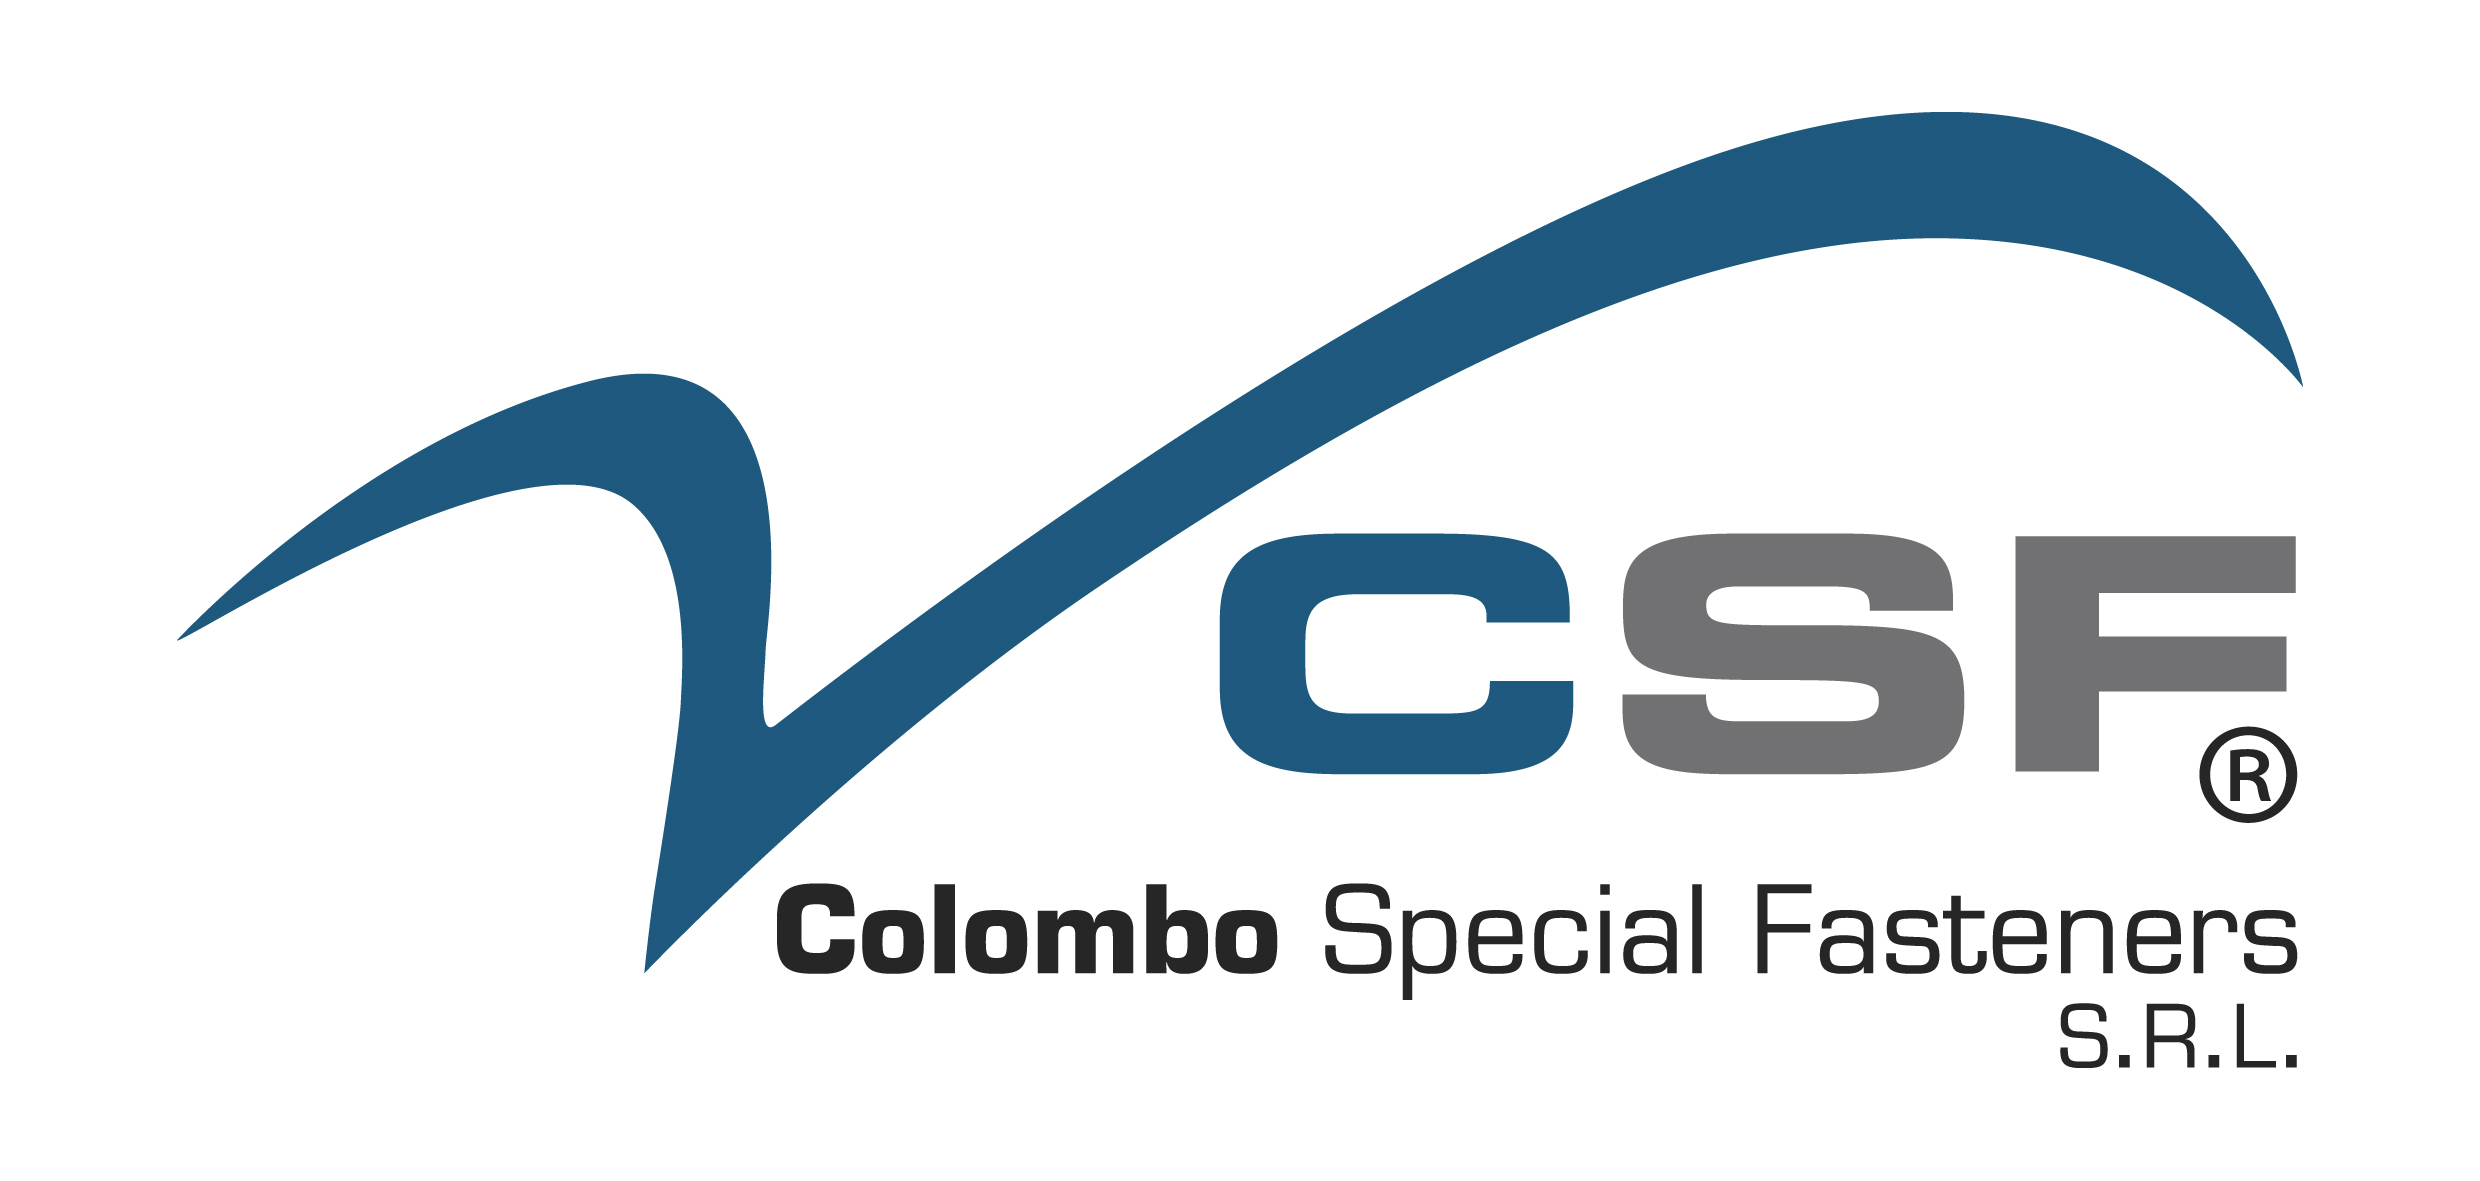 Colombo Special Fasteners